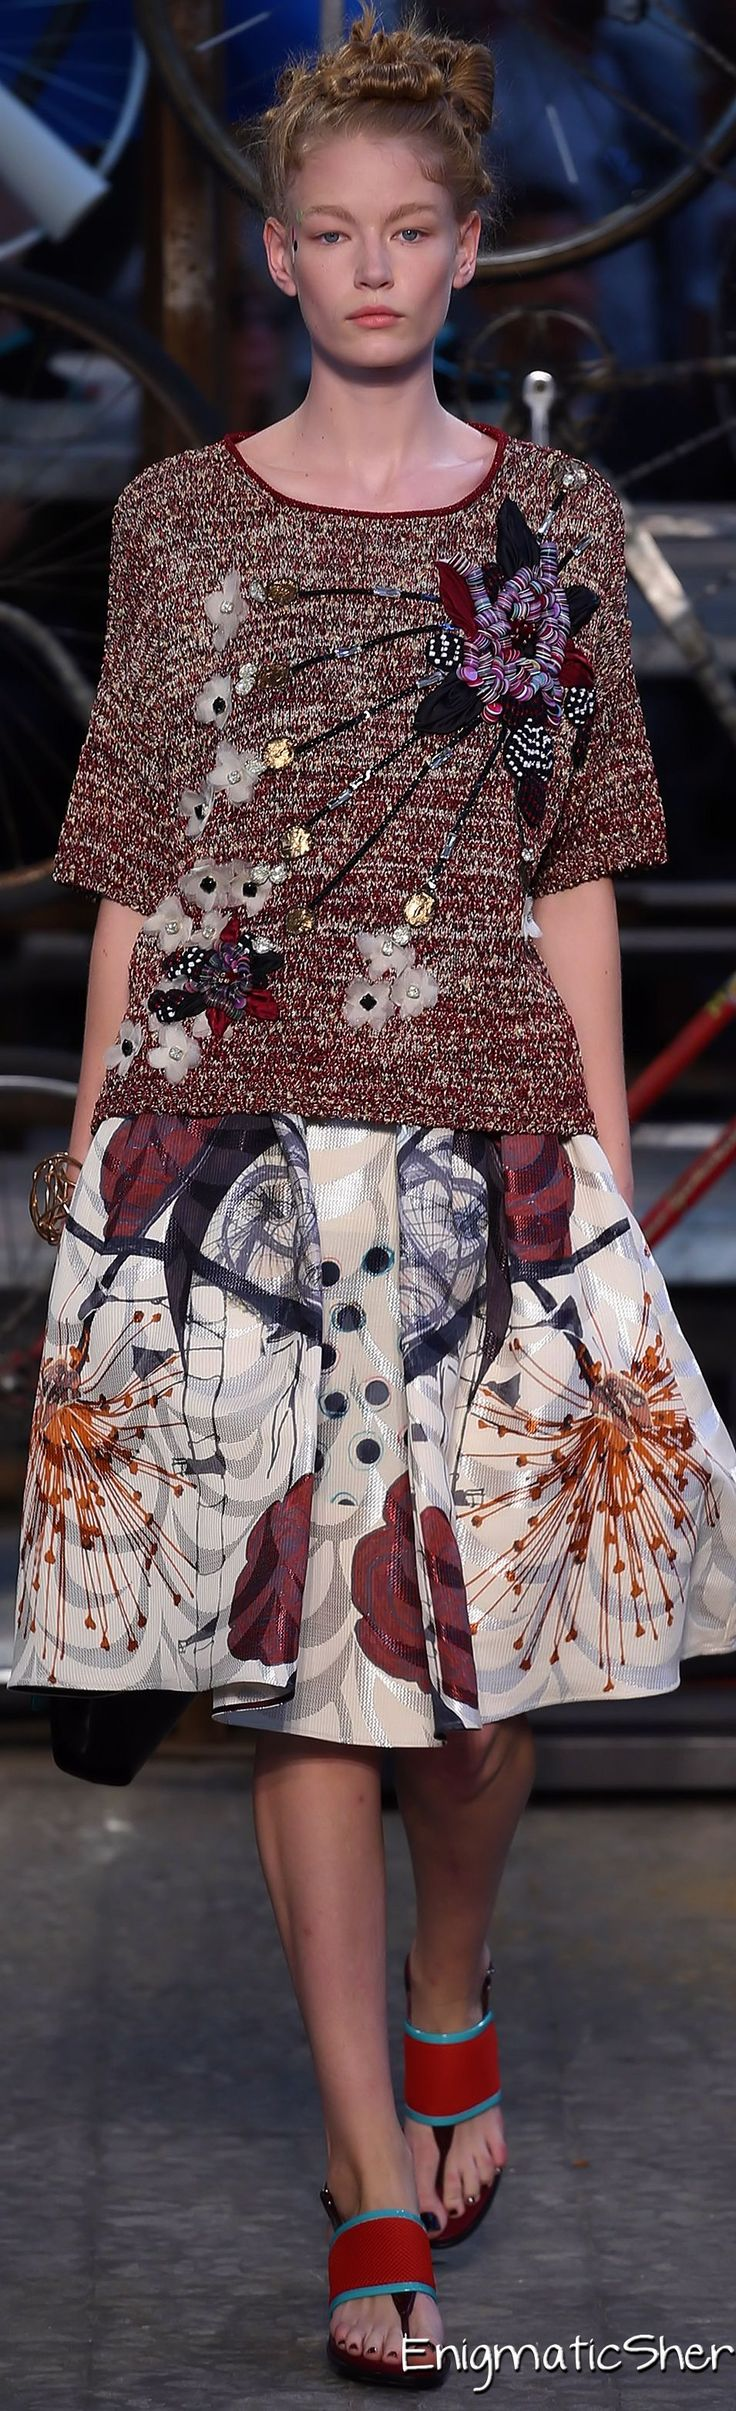 Antonio Marras Spring Summer 2015 Ready-To-Wear